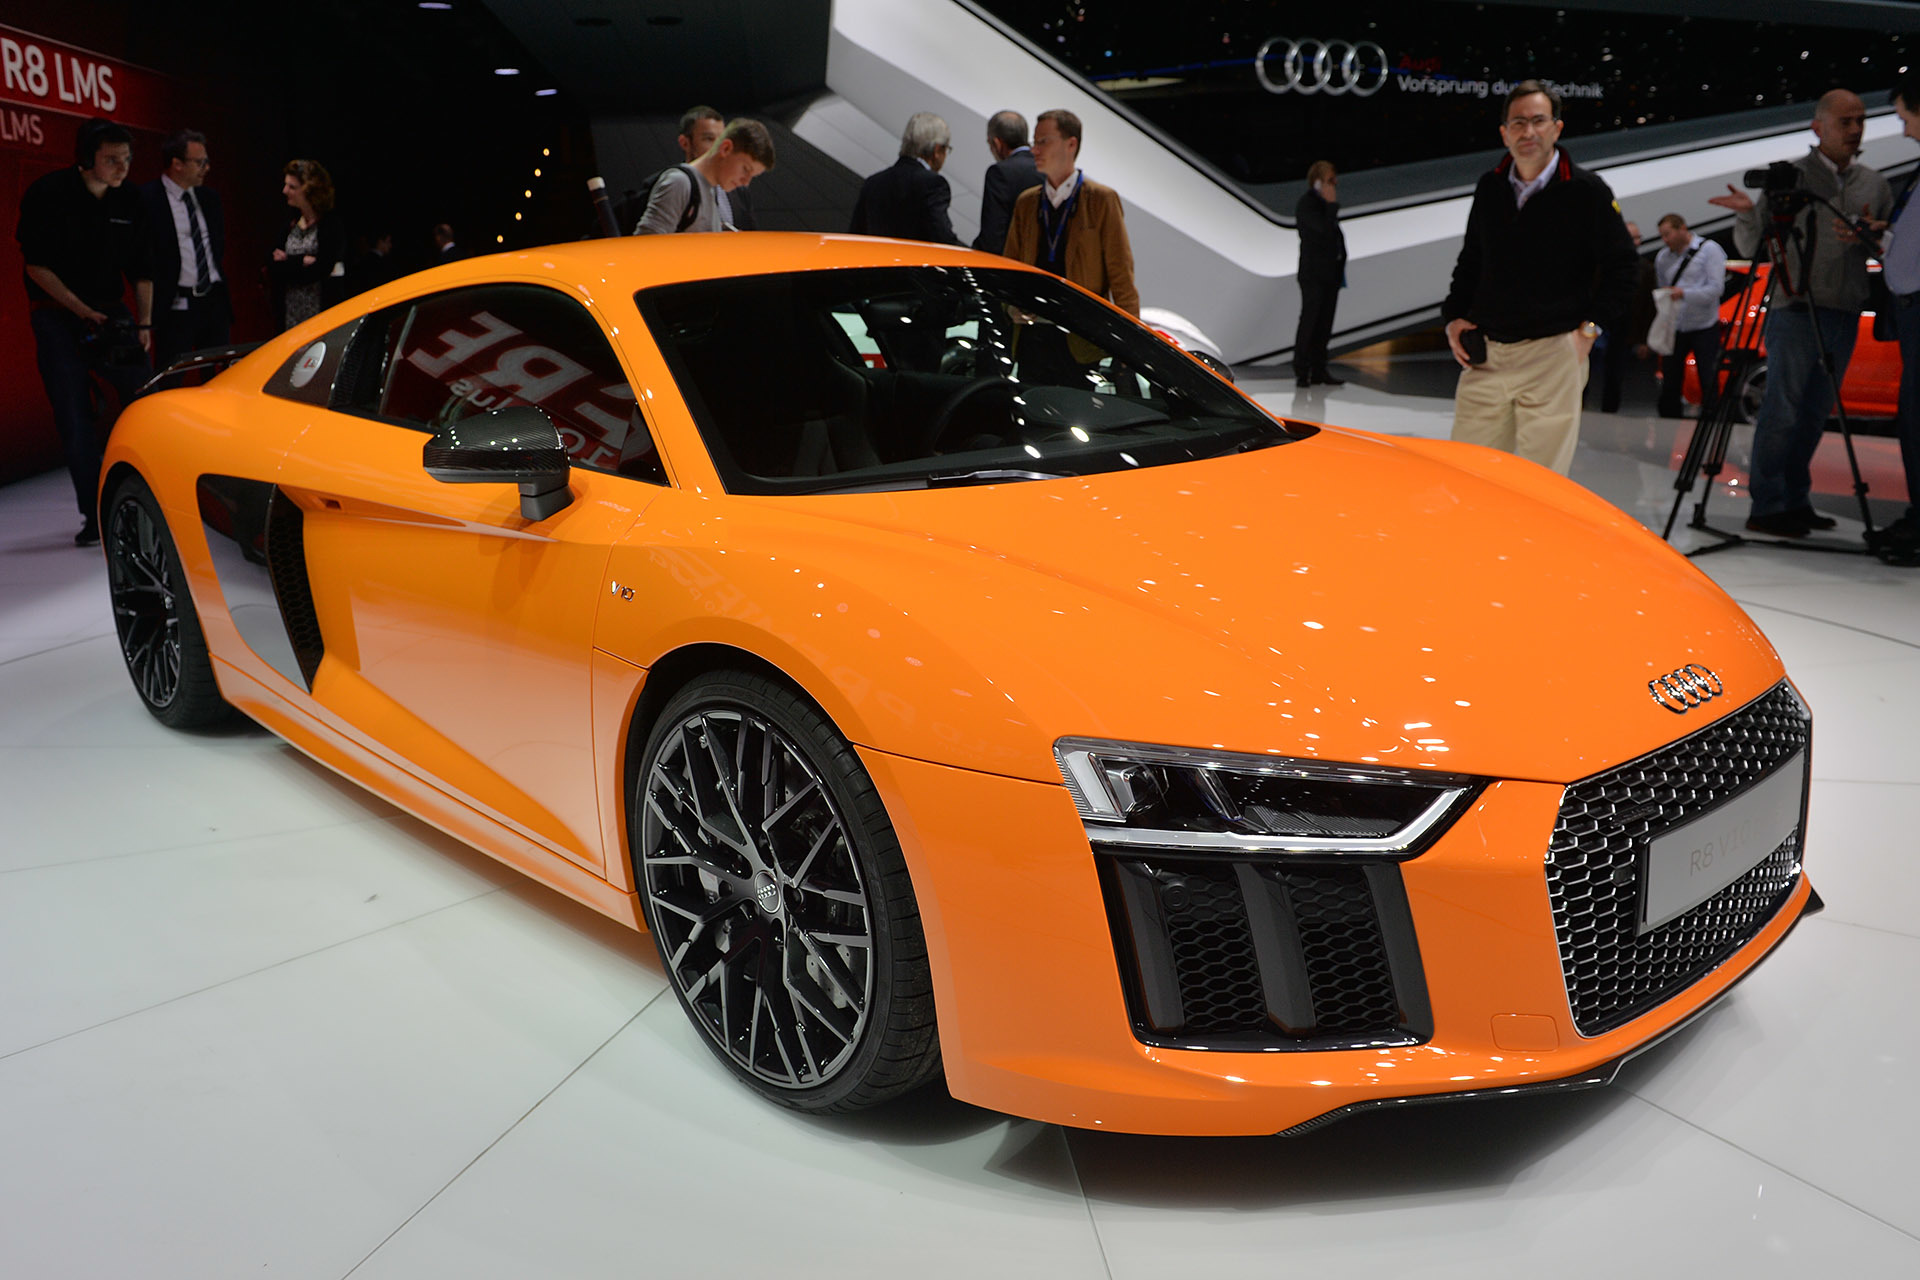 2016 Audi R8 V10 and V10 Plus Cars |